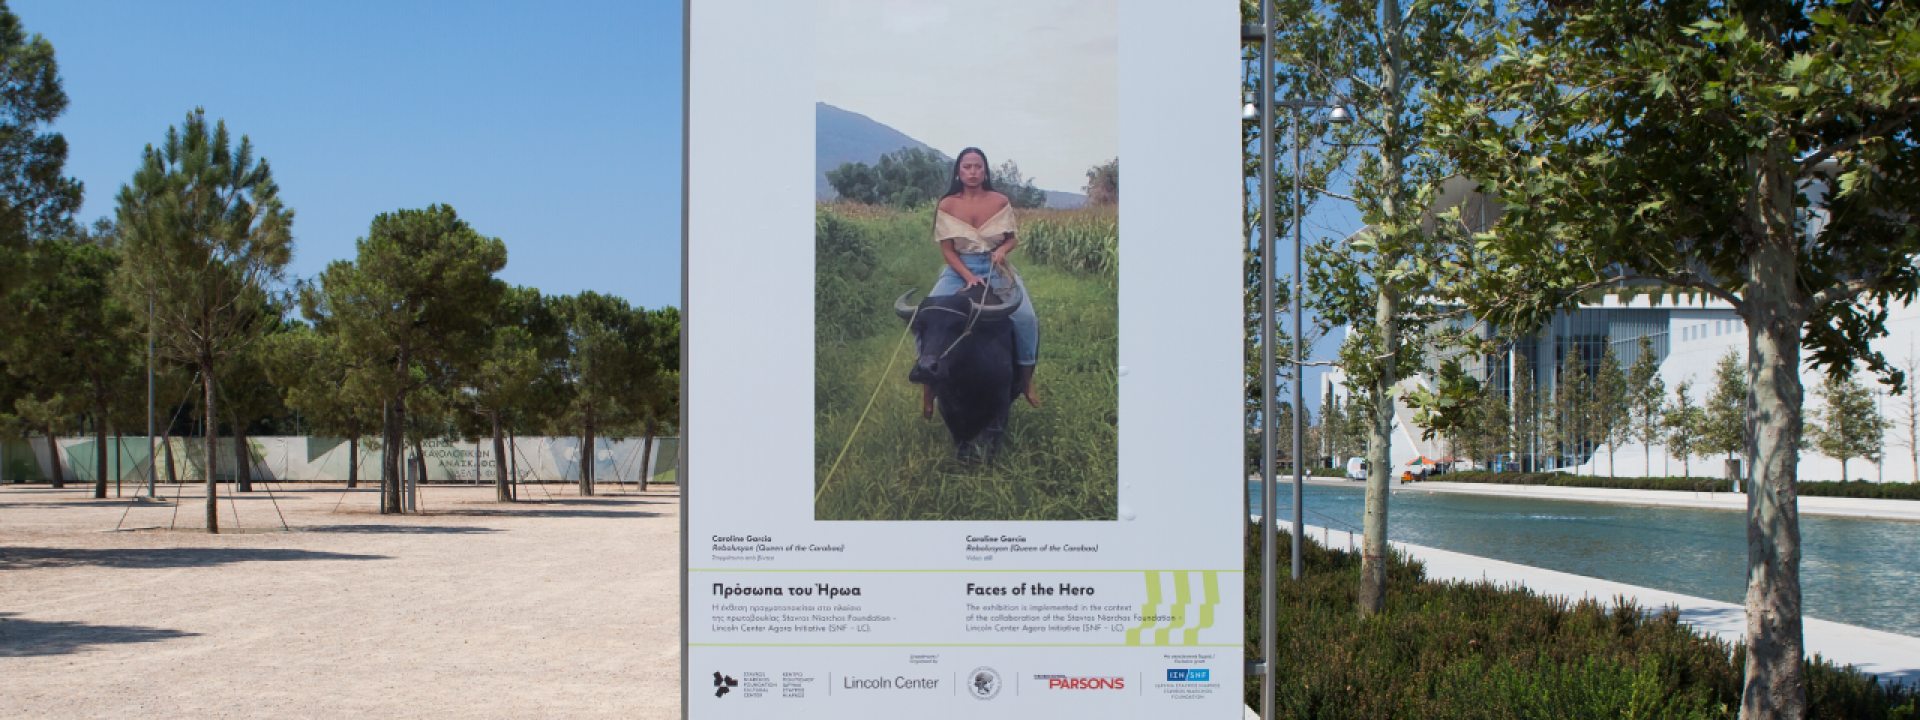 Stavros Niarchos Foundation – Lincoln Center Agora Initiative Presents Faces of the Hero a Transatlantic Art Exhibition on Display in New York and Athens - Εικόνα